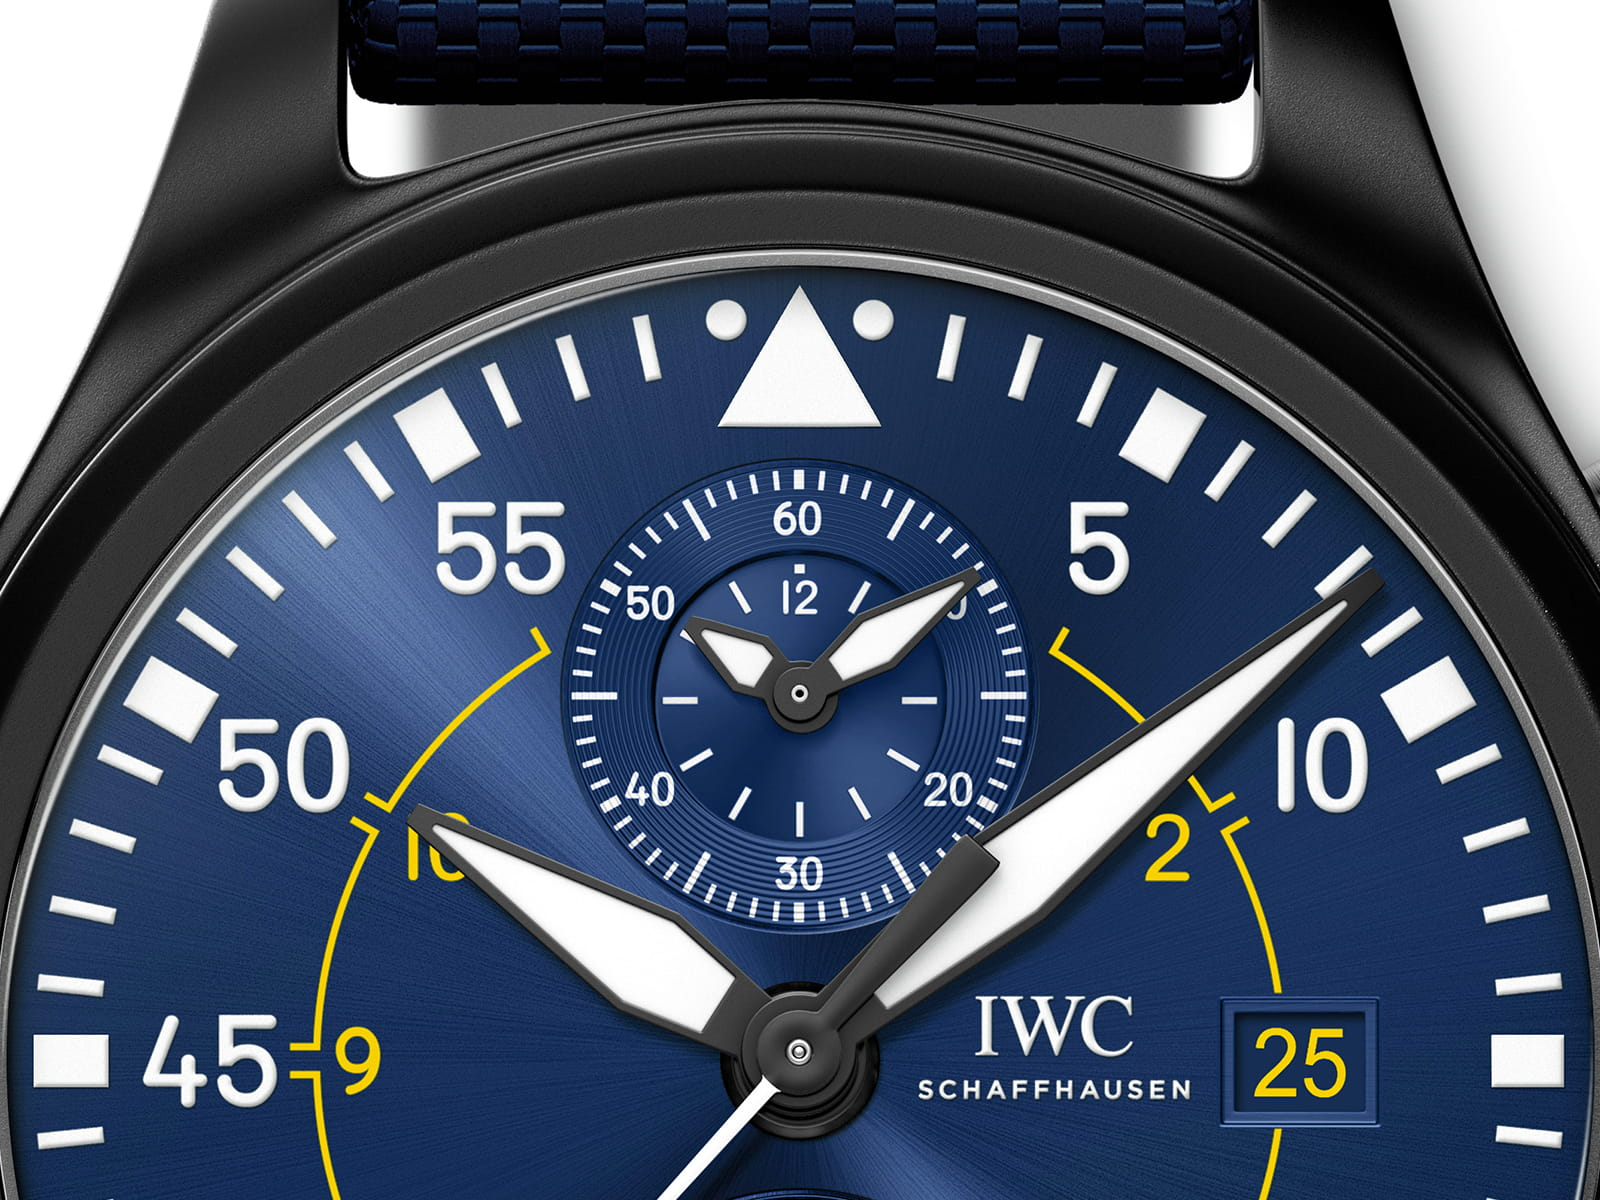 iw389008-iwc-schaffhausen-pilot-s-watch-chronograph-edition-blue-angels-5.jpg